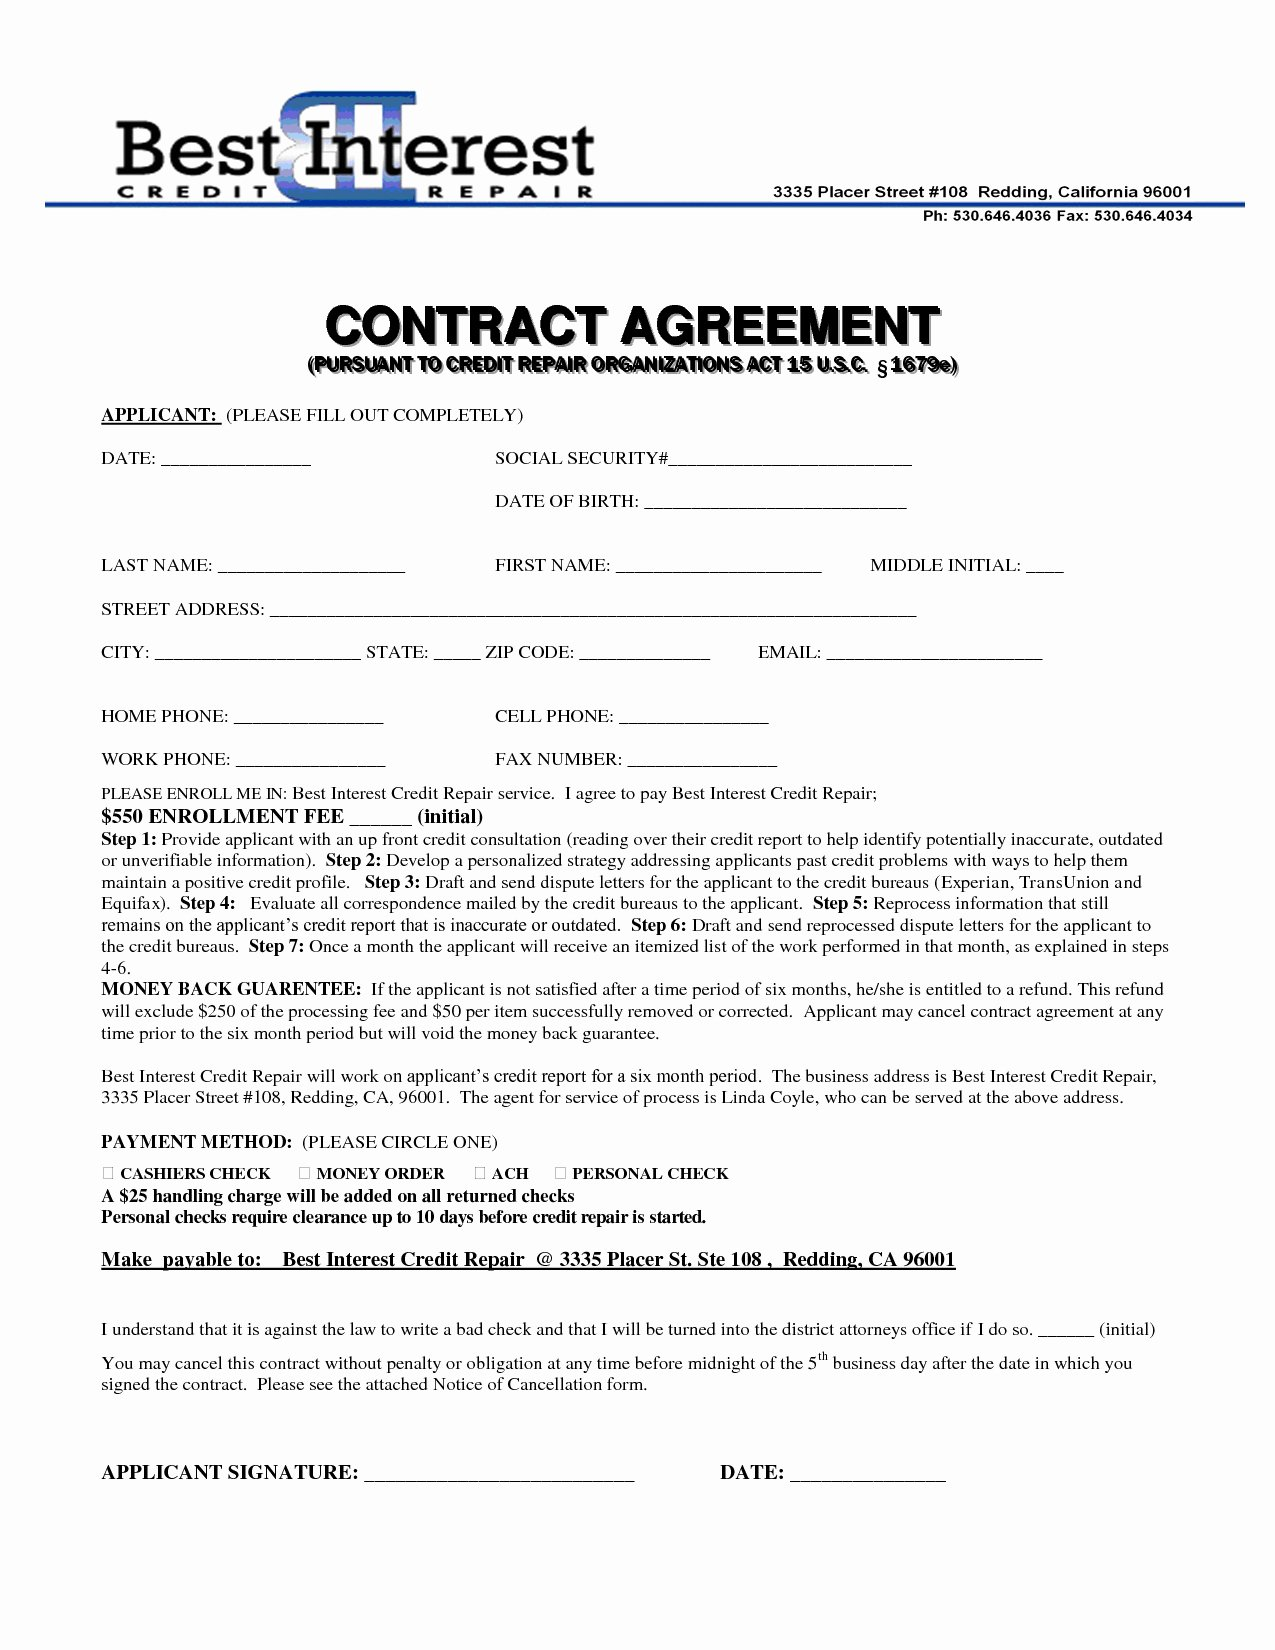 Computer Repair Agreement Template Lovely Goodwill Letter Template to Remove Paid Collections